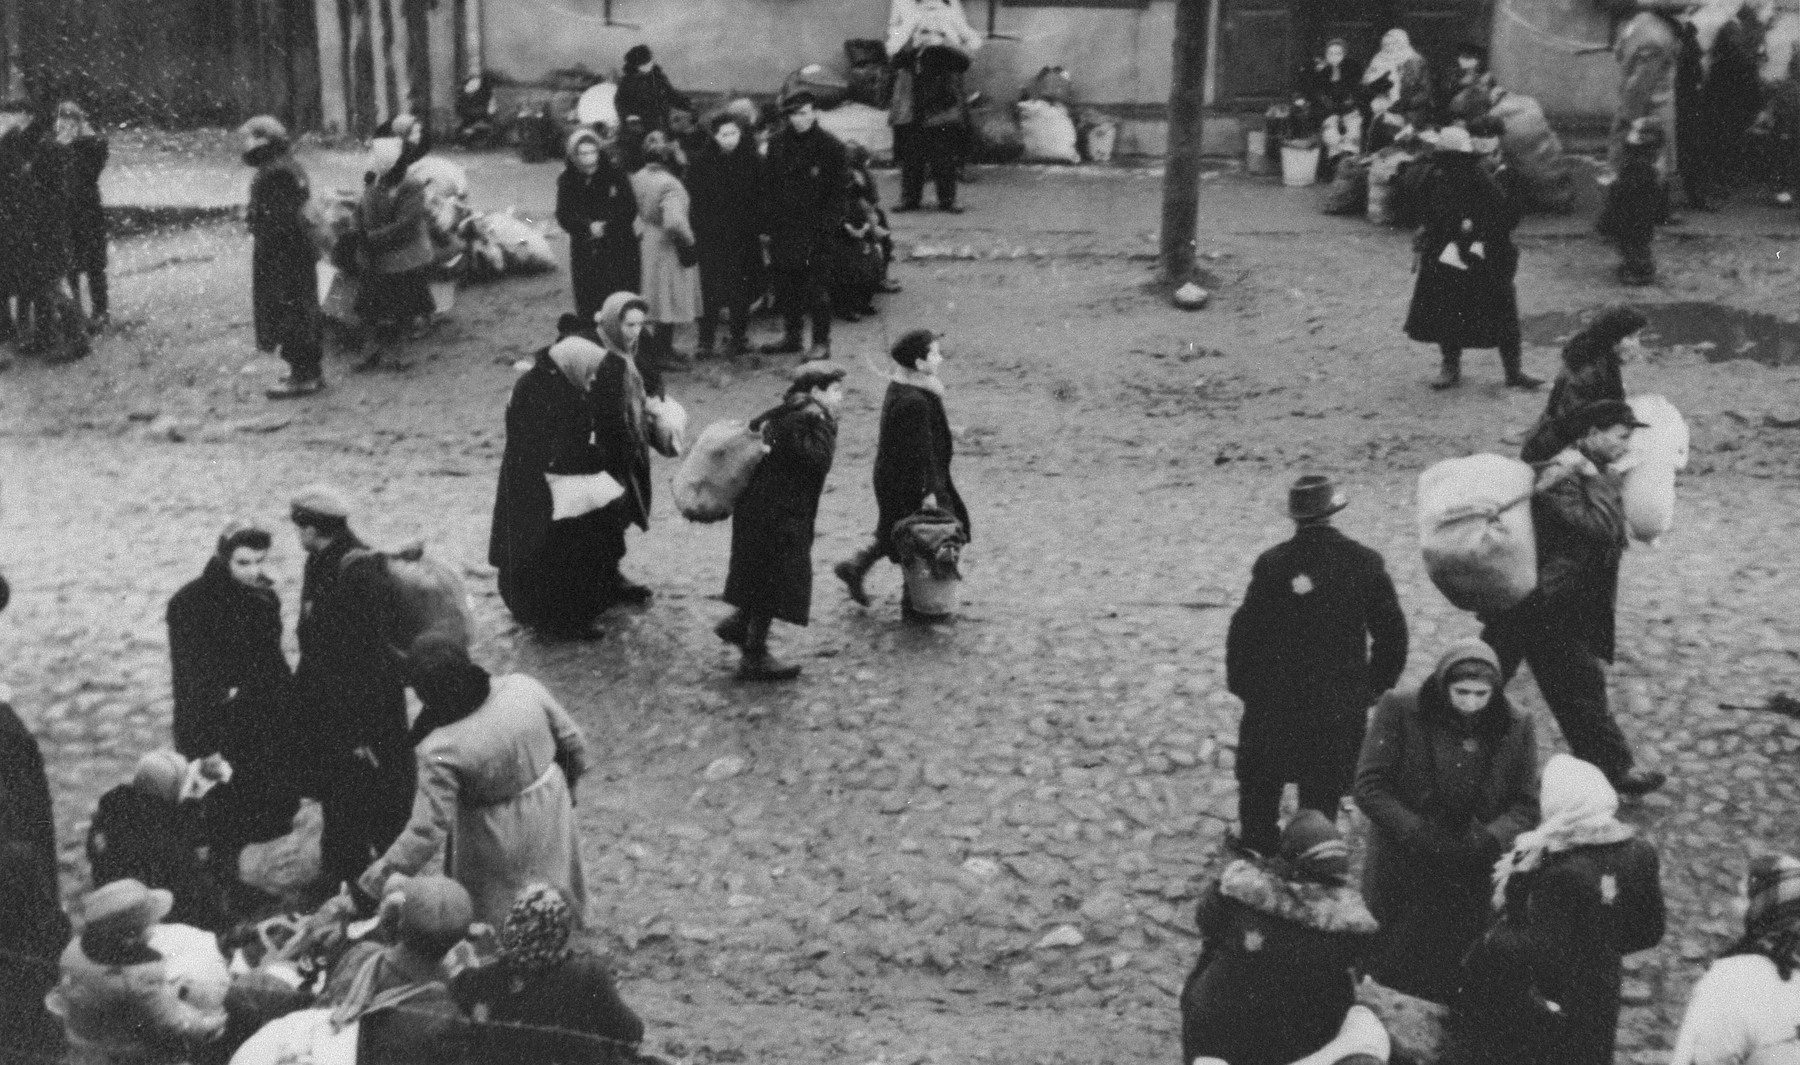 Jews are gathered at an assembly point in the Kovno ghetto during a deportation action [probably to Estonia].